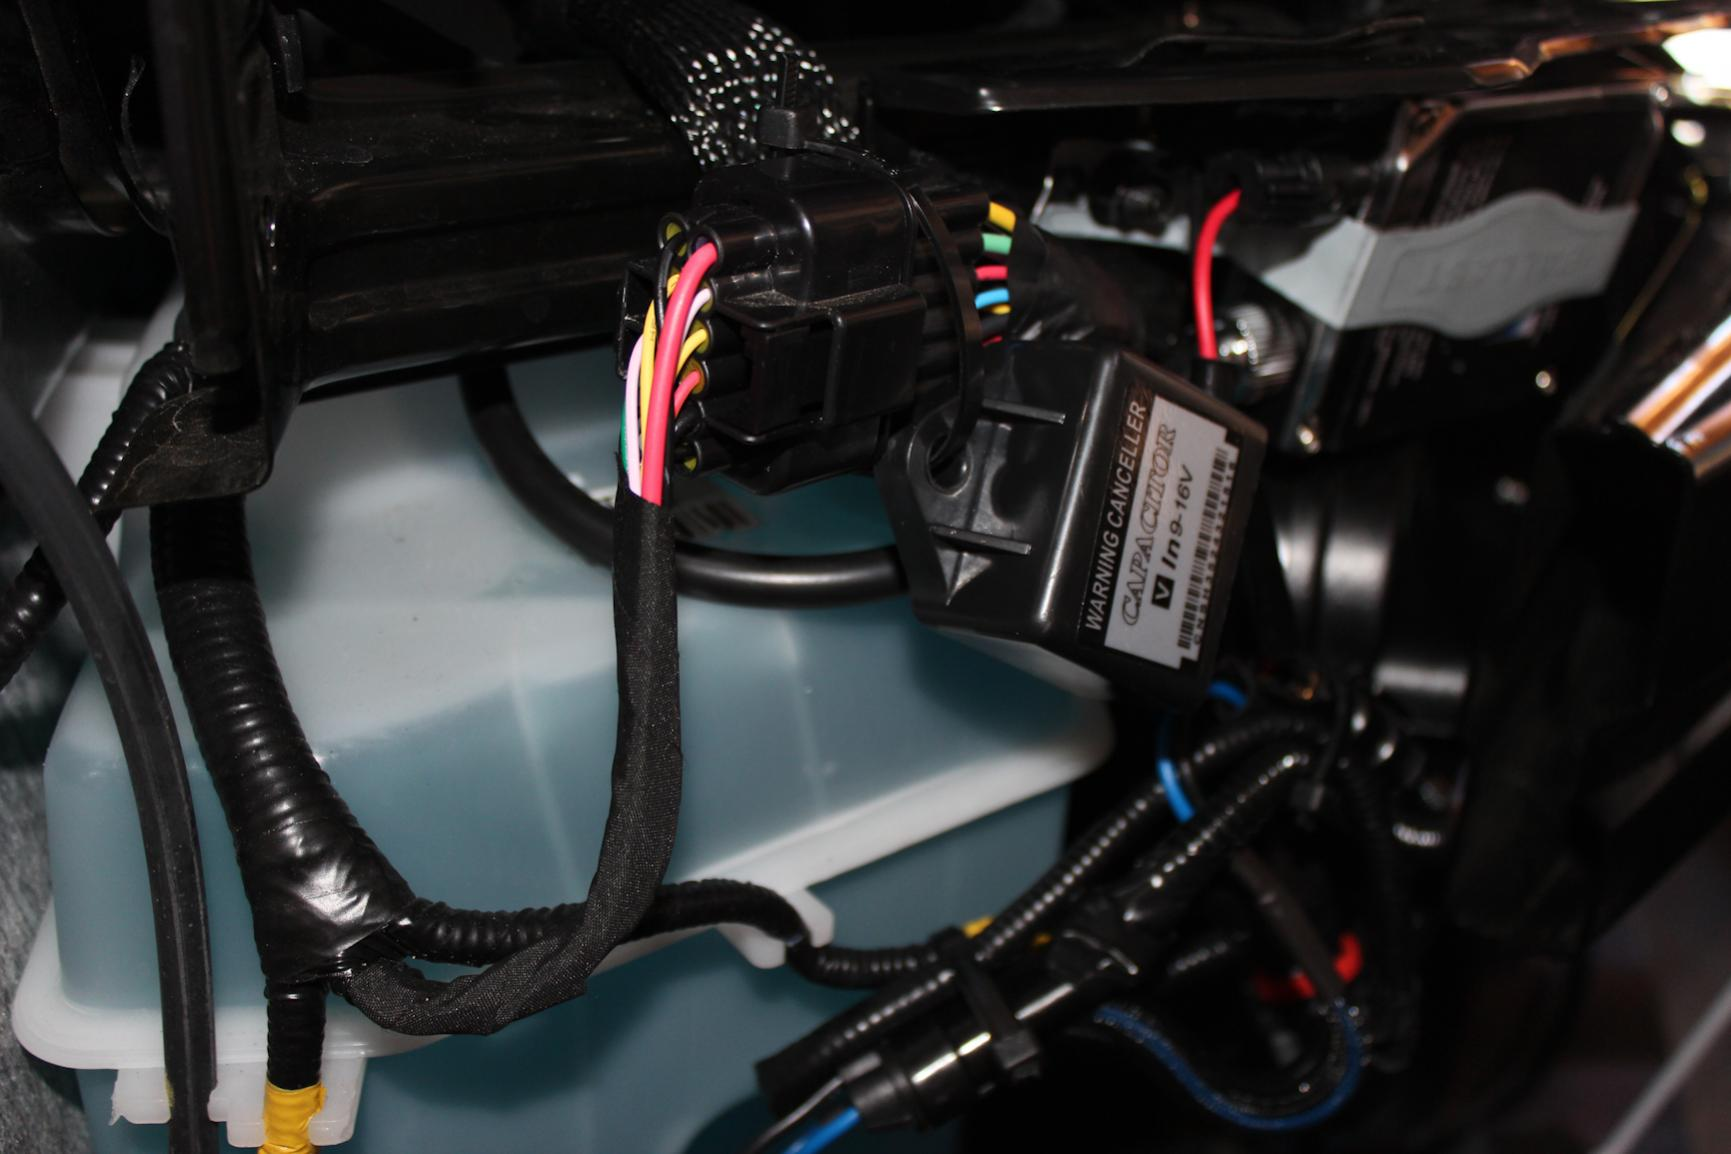 2014 Ford Escape Oil Filter Location furthermore 2008 Toyota RAV4 as well 2015 Hyundai Tucson as well Opel Manta as well Nissan Sentra Fusible Link. on 2010 nissan frontier wiring diagram